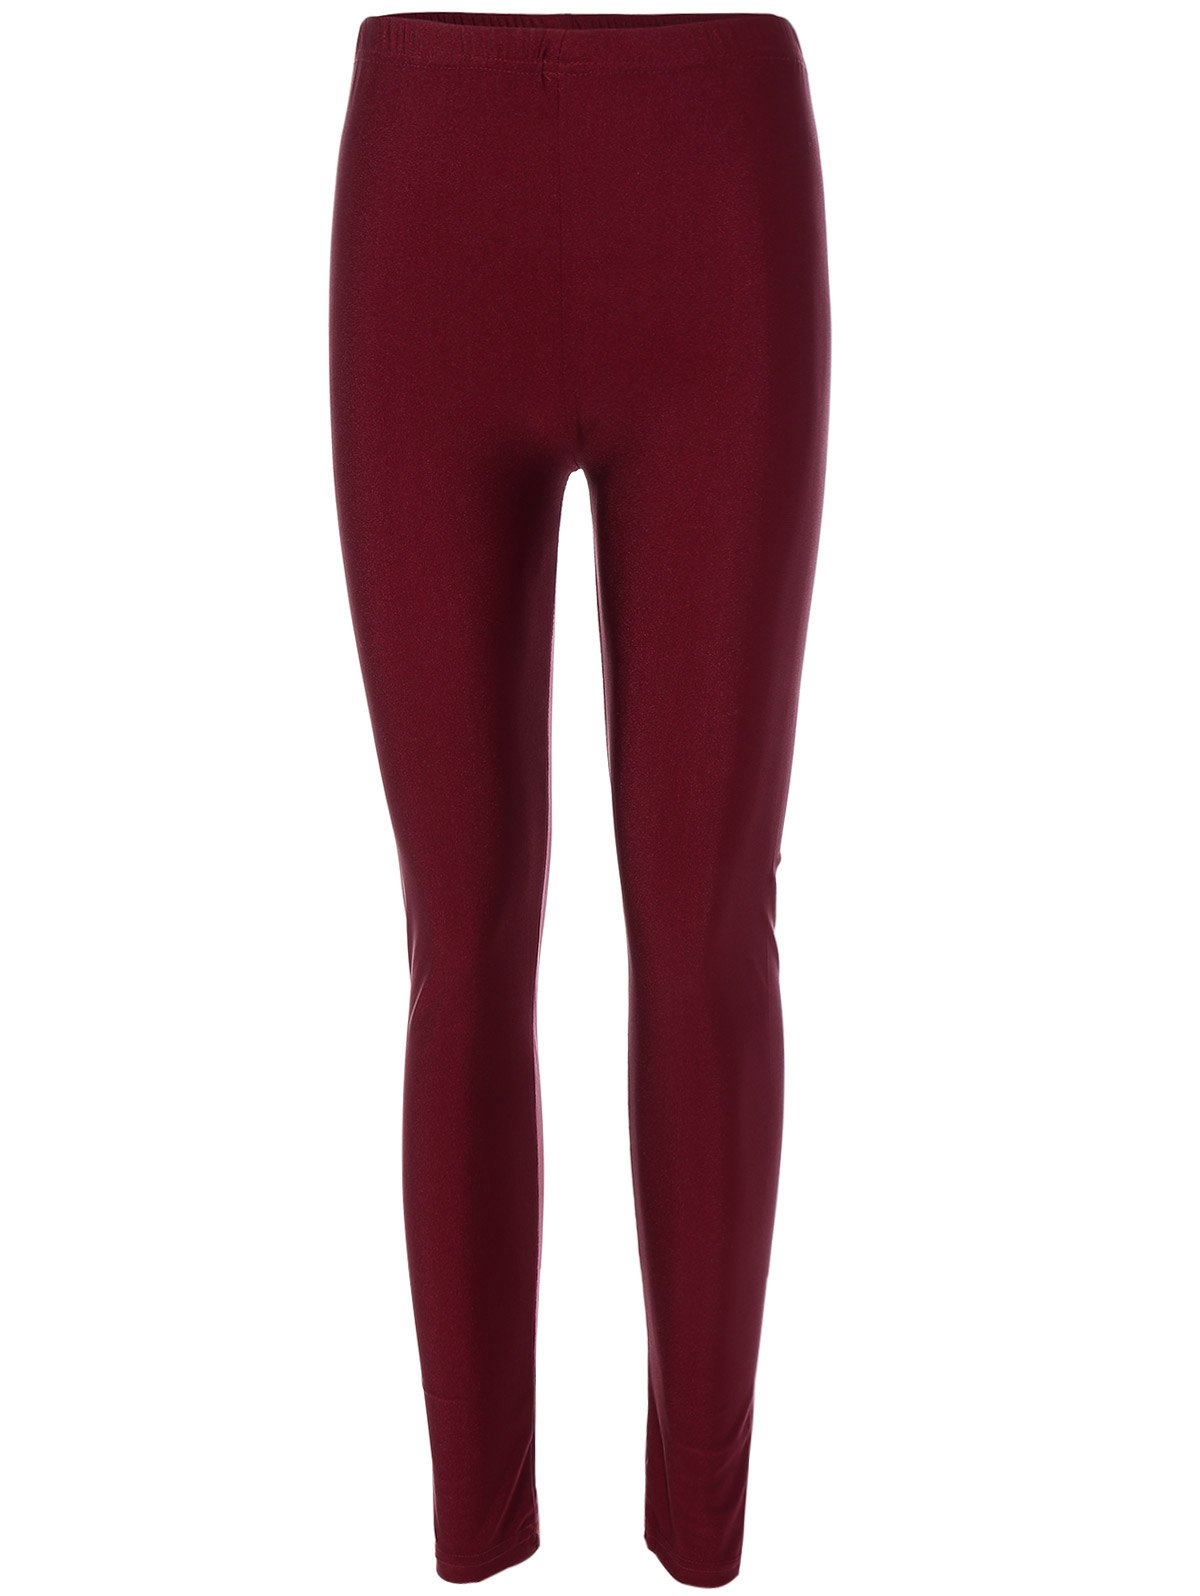 Elastic Waist Stretchy Slimming LeggingsWOMEN<br><br>Size: ONE SIZE; Color: BURGUNDY; Style: Active; Length: Ninth; Material: Polyester; Fit Type: Skinny; Waist Type: High; Closure Type: Elastic Waist; Pattern Type: Solid; Pant Style: Pencil Pants; Weight: 0.160kg; Package Contents: 1 x Leggings;